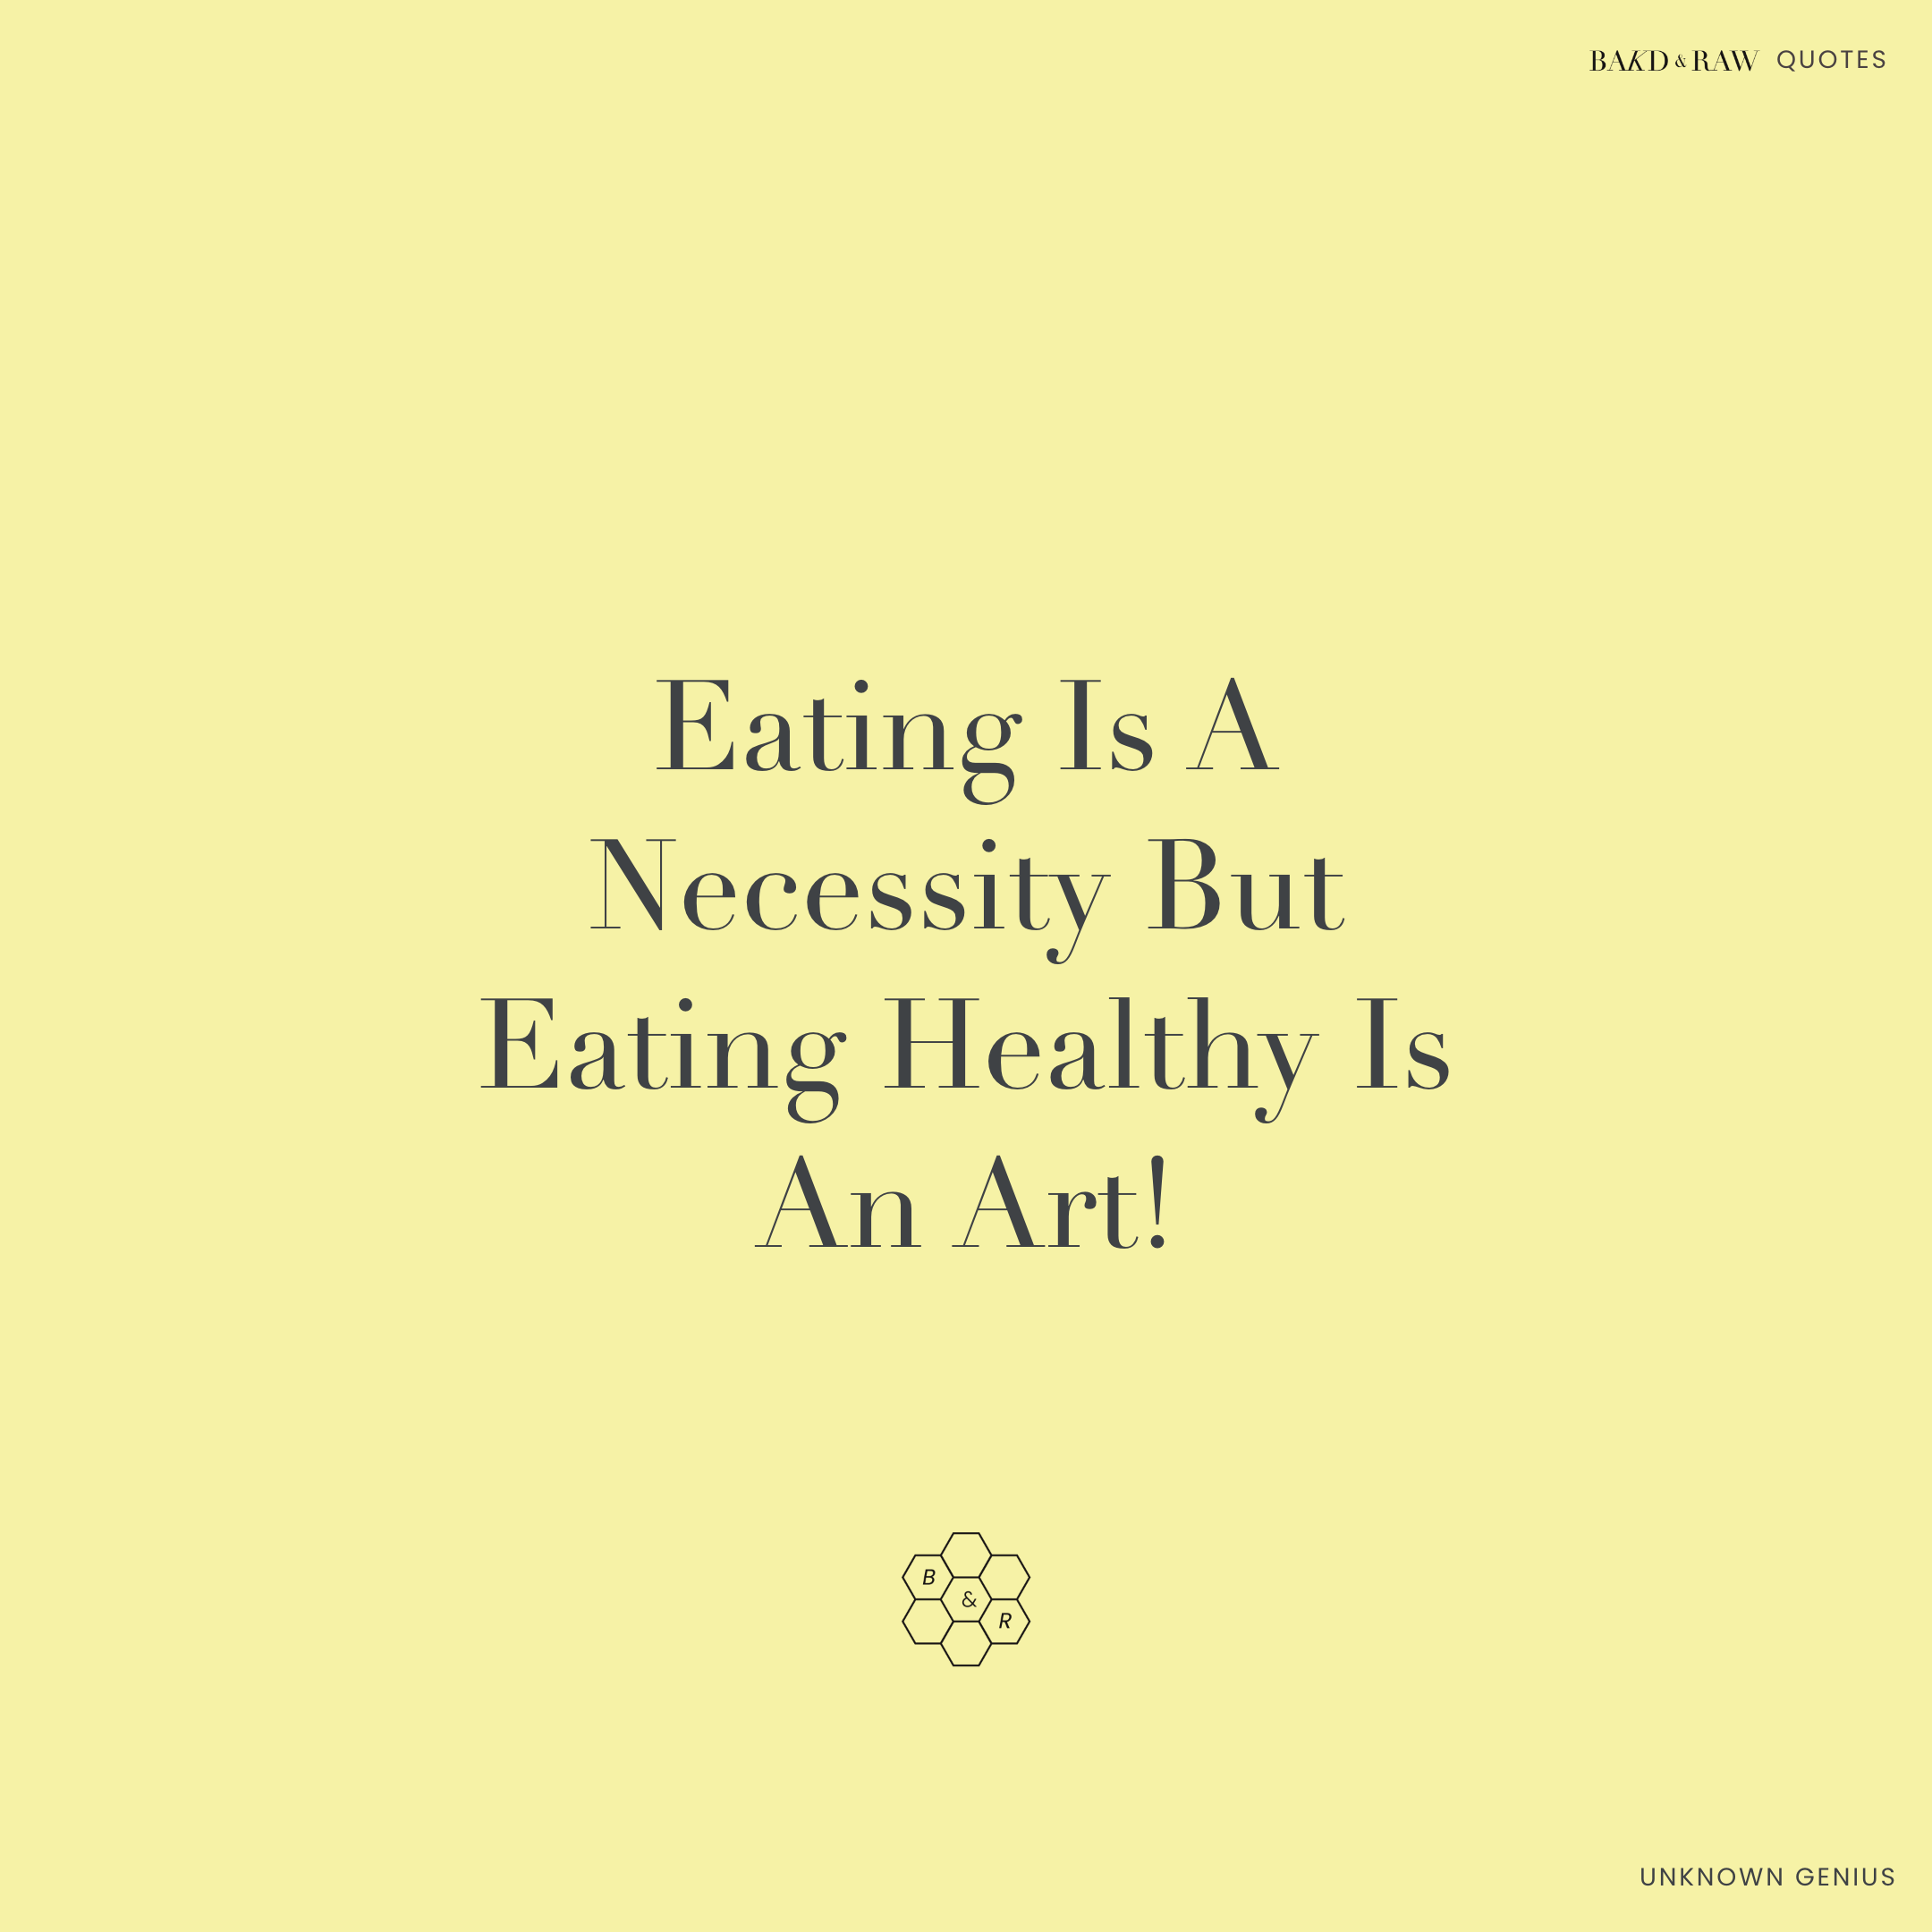 Eating is a necessity, Bakd&Raw Food Quotes by Karolin Baitinger